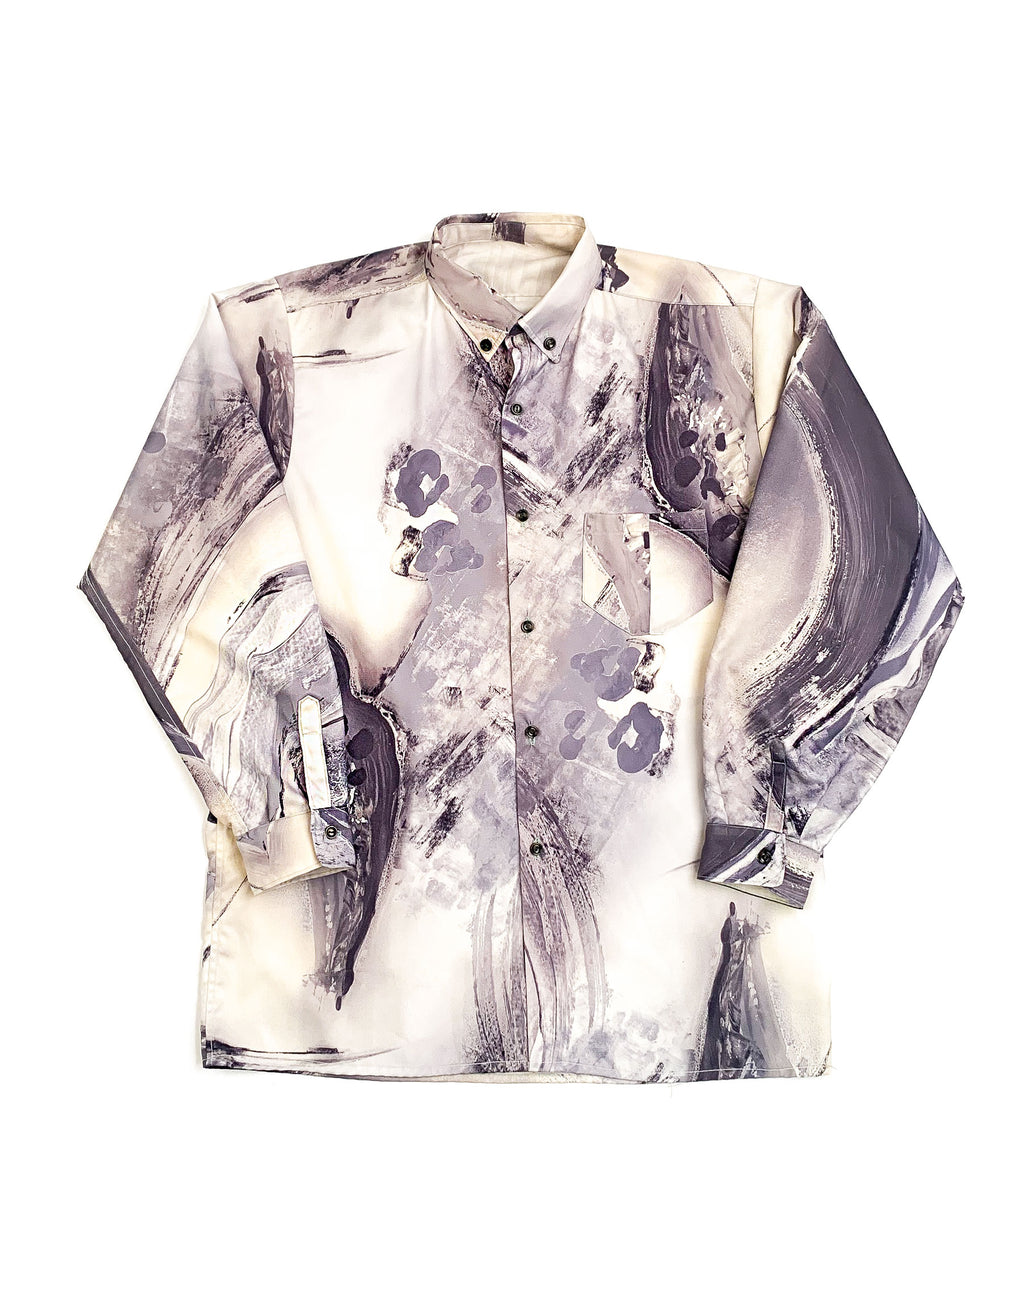 GREY MARBLE ABSTRACT SHIRT